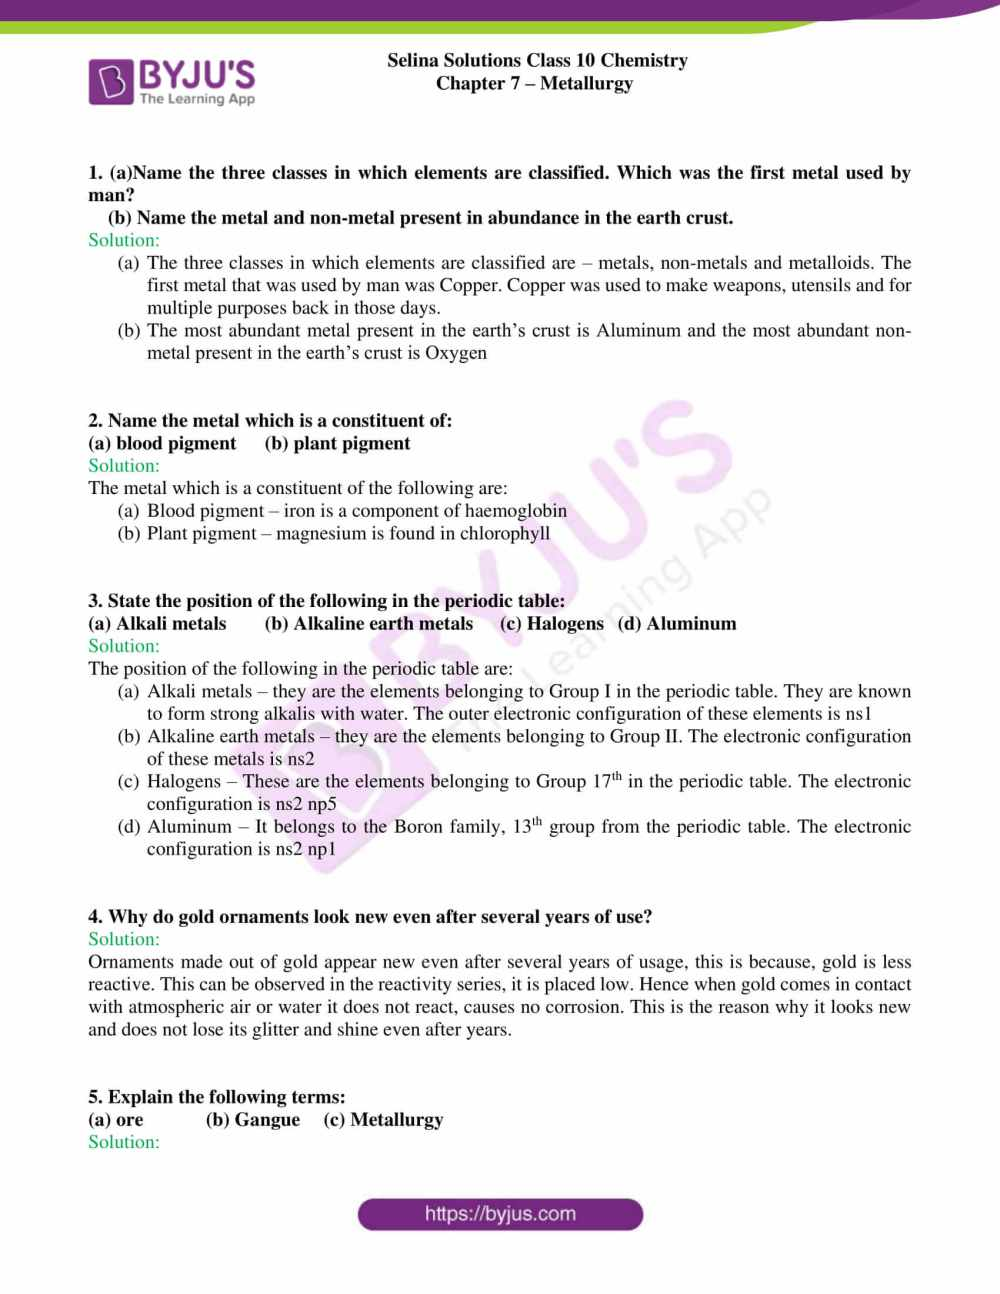 medium resolution of Selina Solutions Class 10 Concise Chemistry Chapter 7 Metallurgy -Download  Free PDF